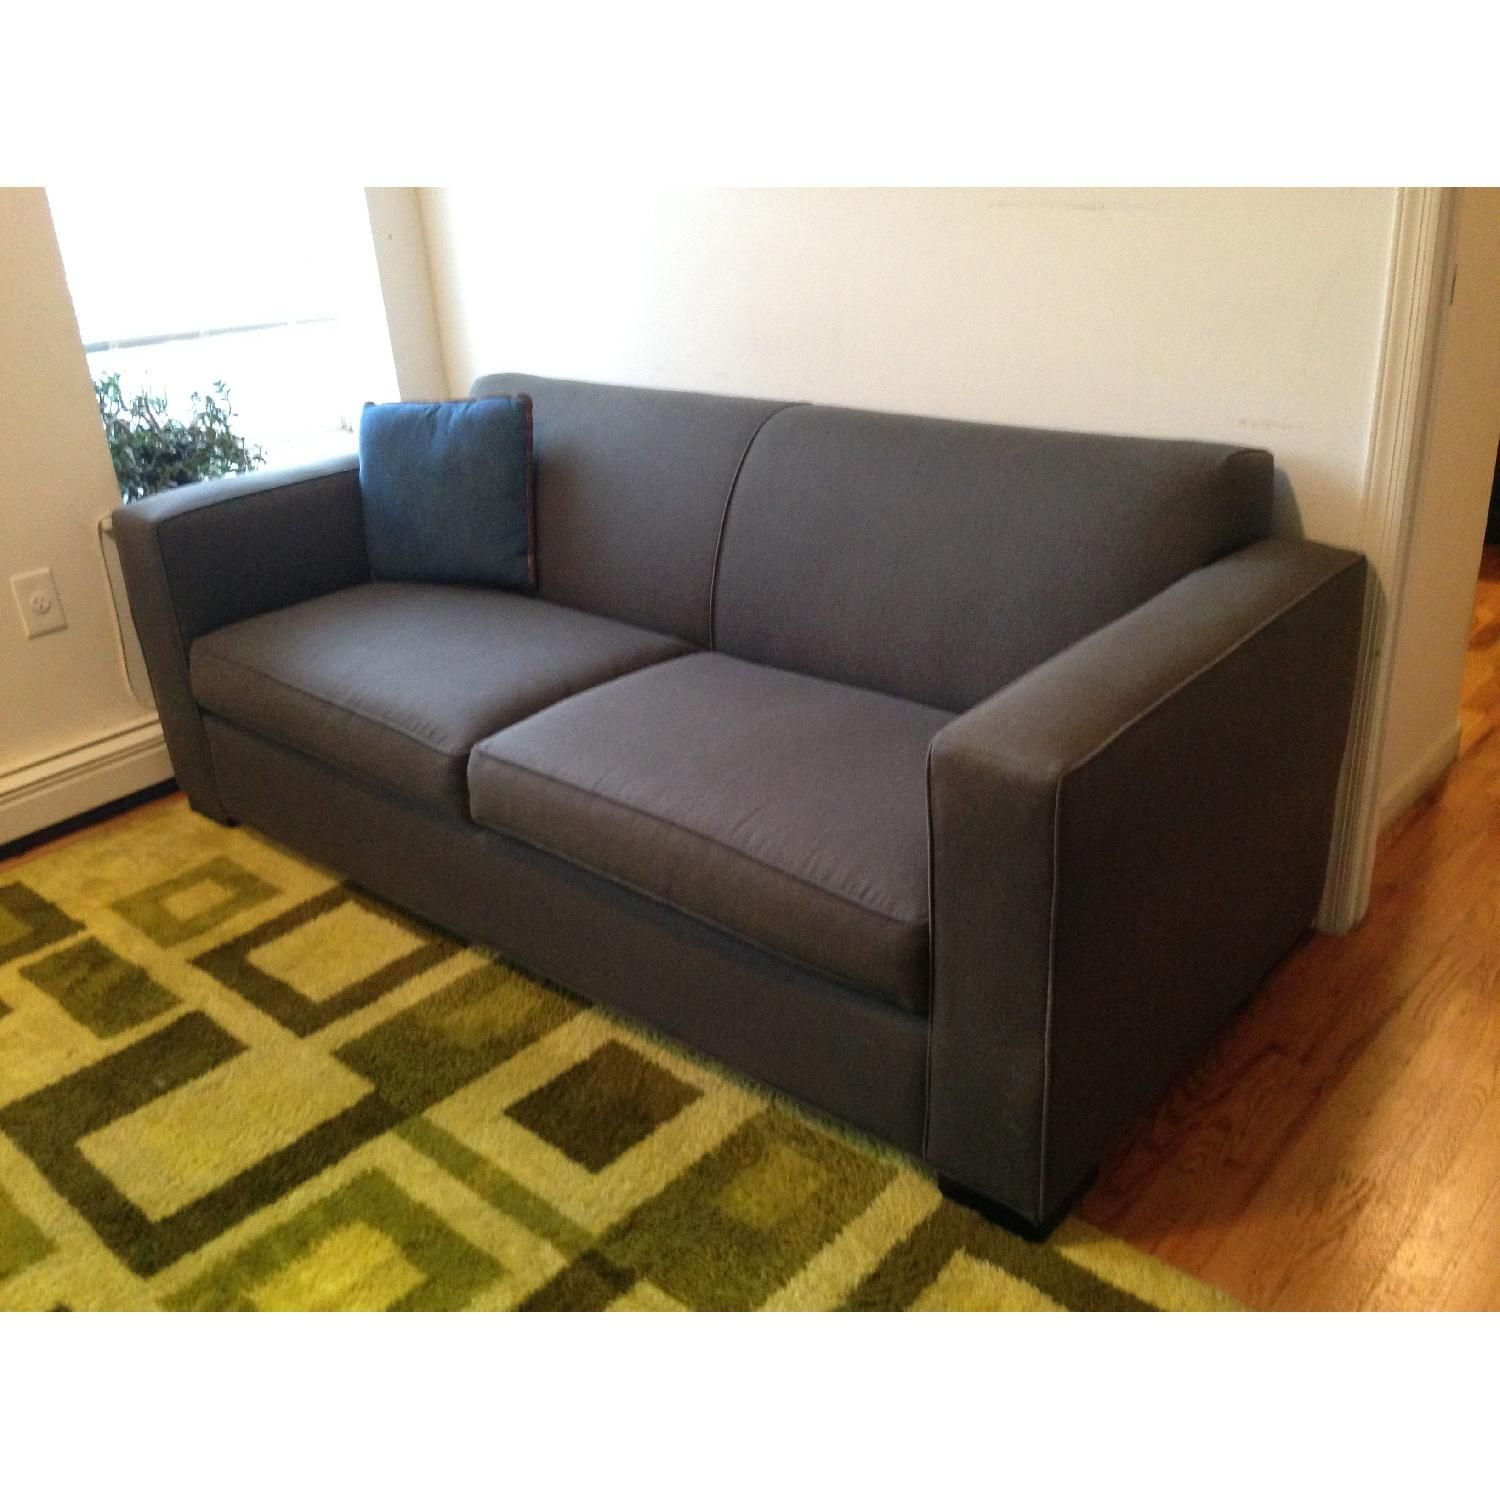 Room And Board Sectional Sofa Bed Recling Sofas Mccreary Modern Ian Home